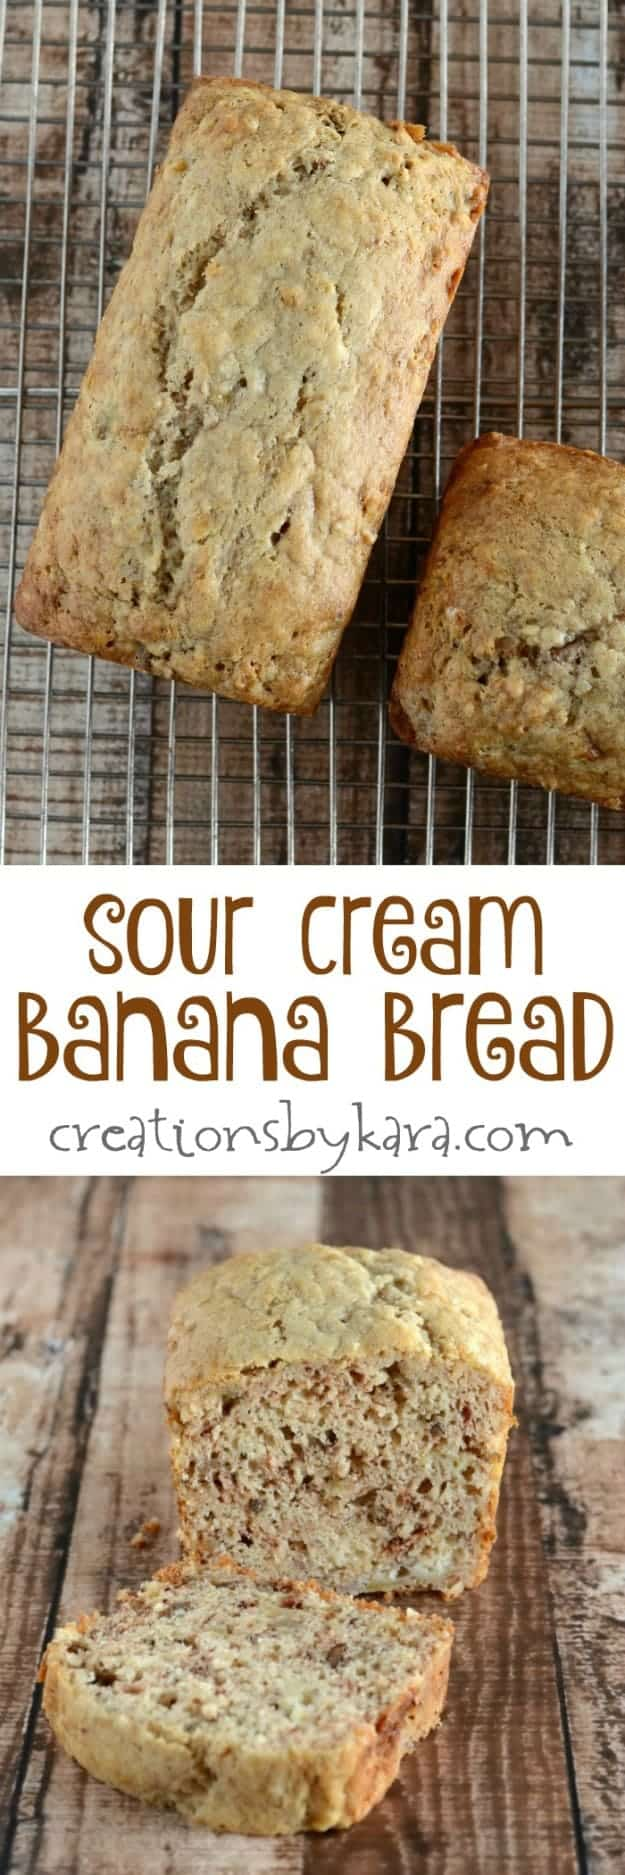 This Sour Cream Banana Bread recipe will blow you away!